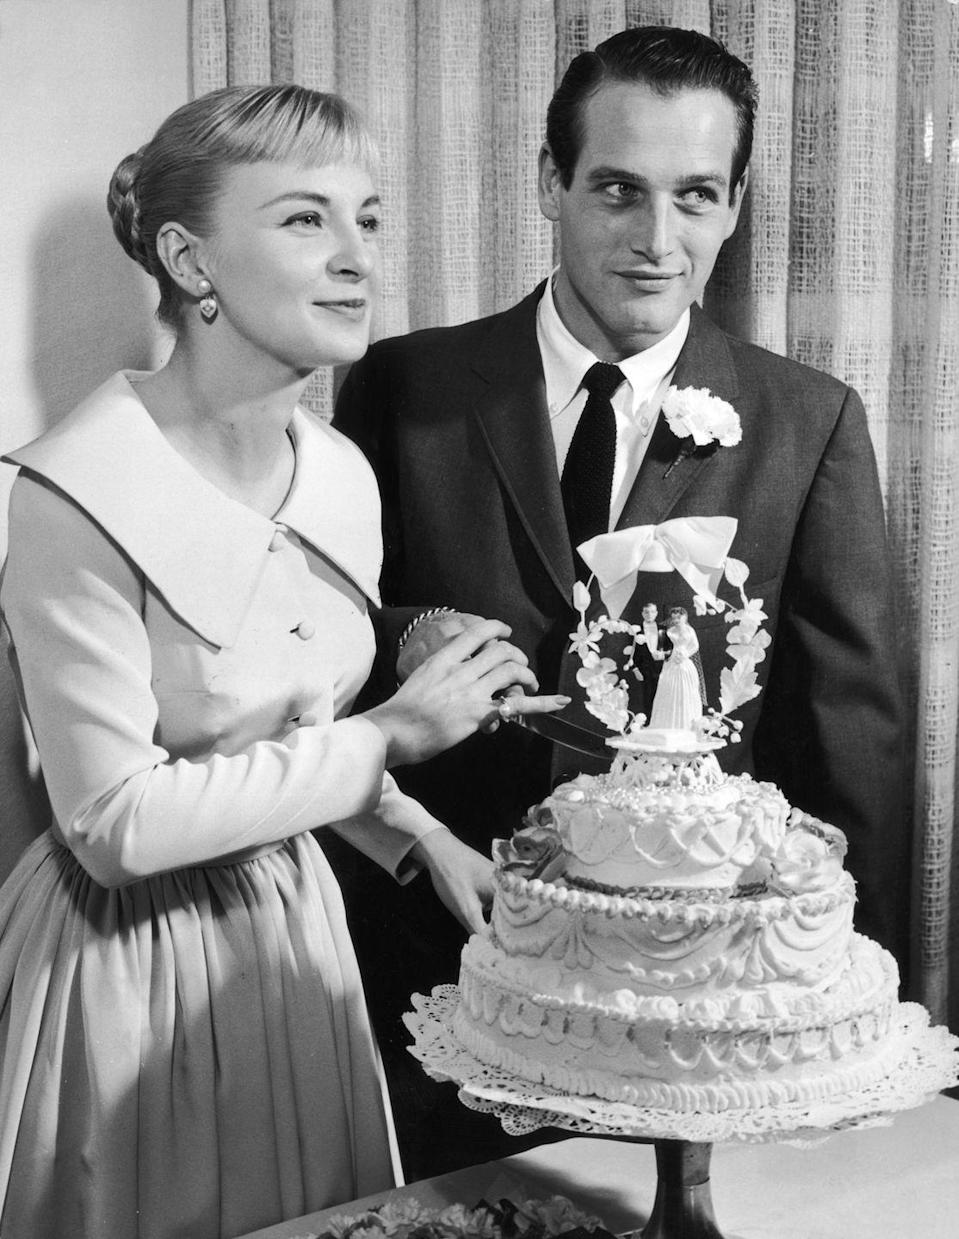 <p>Hollywood heavy hitters, Joanne Woodward and Paul Newman, pose with their wedding cake following a Las Vegas ceremony in 1958. The couple was married for 50 years. </p>